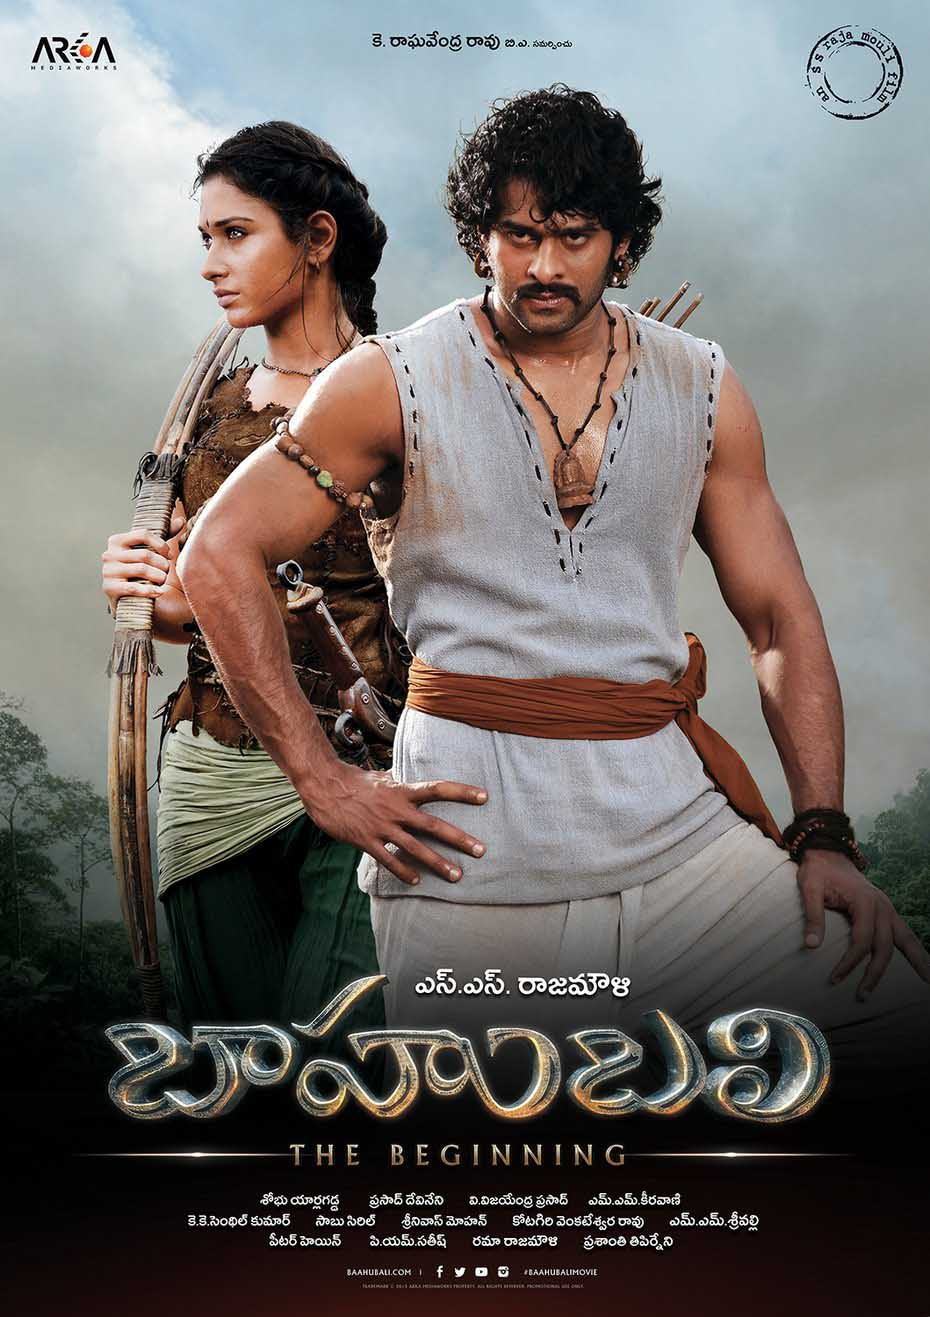 Baahubali Part 2 Story